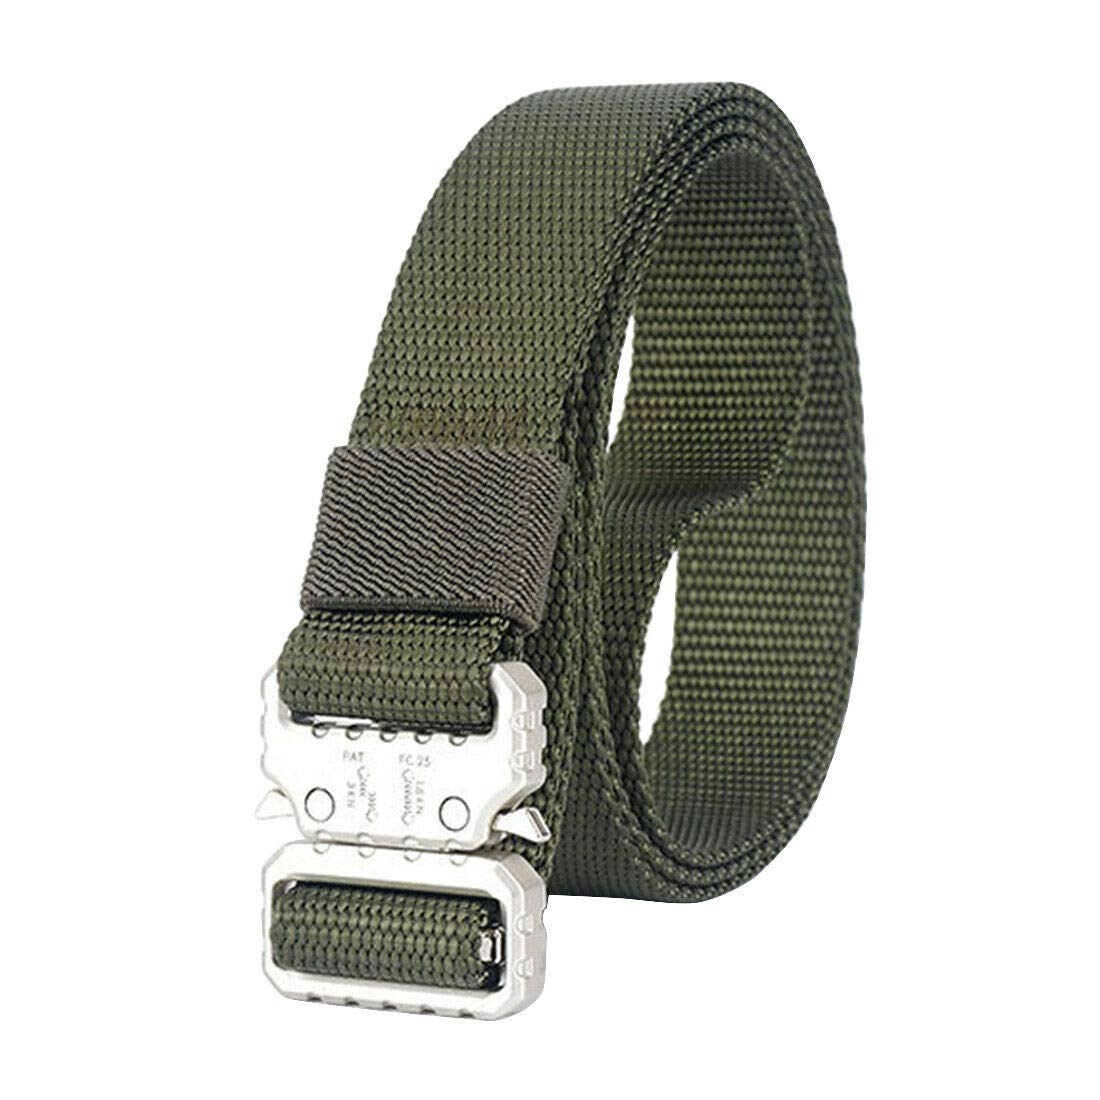 Awesome Military & Tactical Belt - High Demand Product - Absolutely Love This Belt